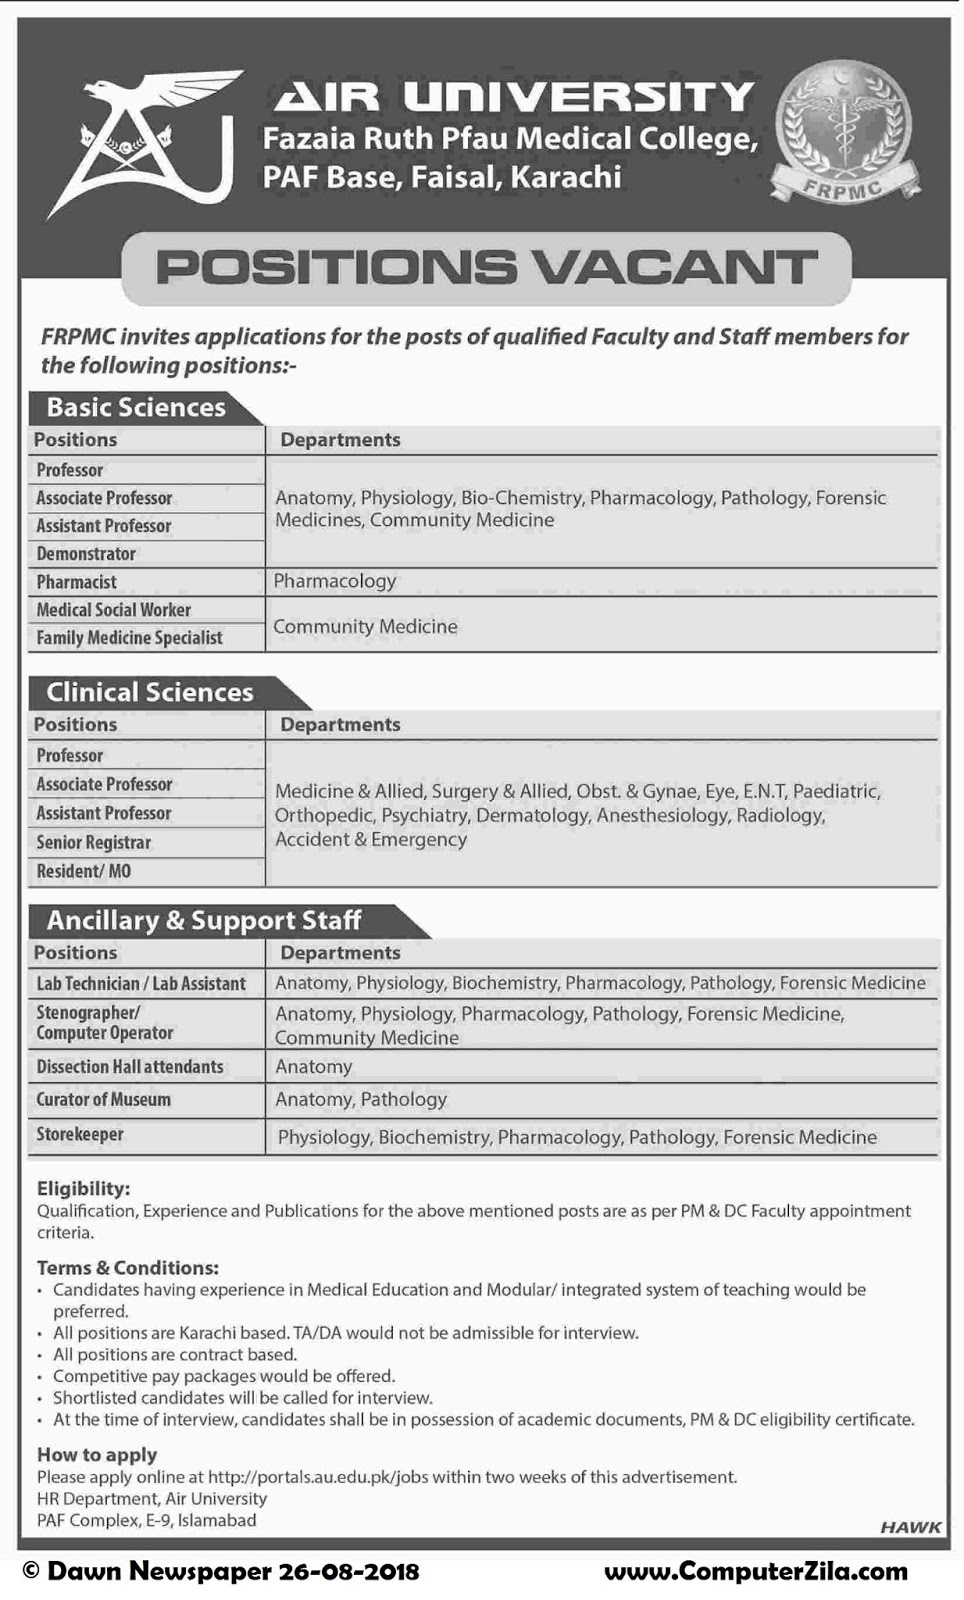 Positions Vacant at Air University, Fazaia Ruth Pfau Medical College